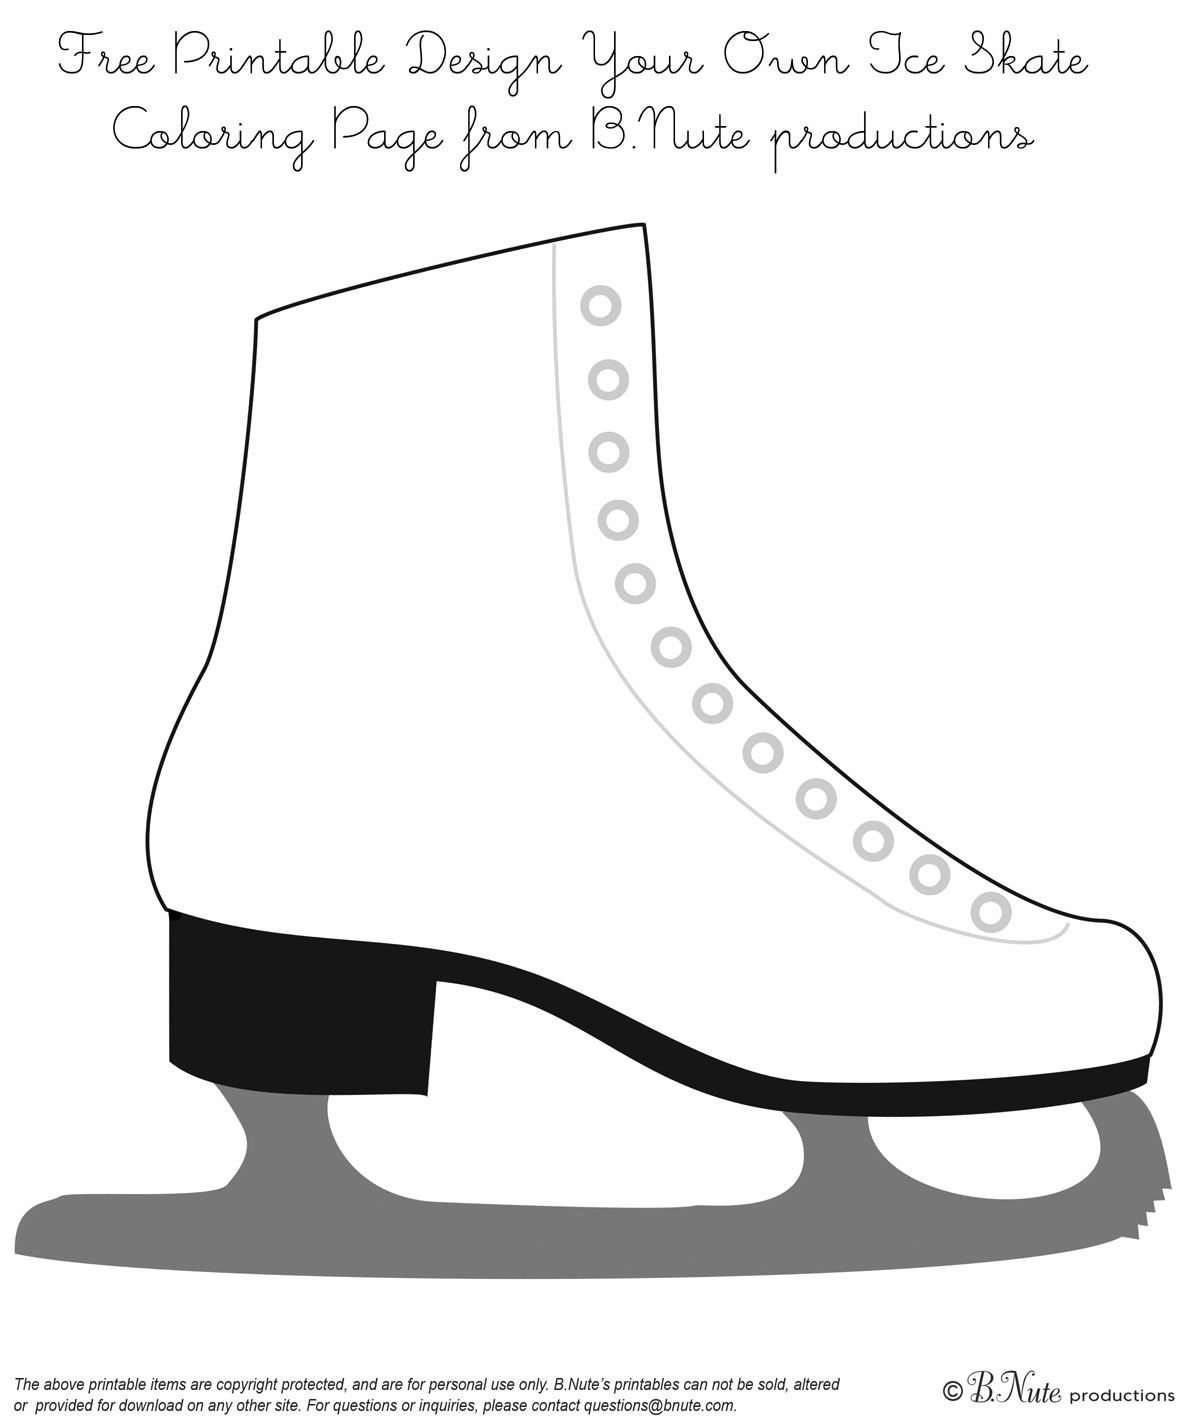 free printable coloring page design your own ice skate from b nute